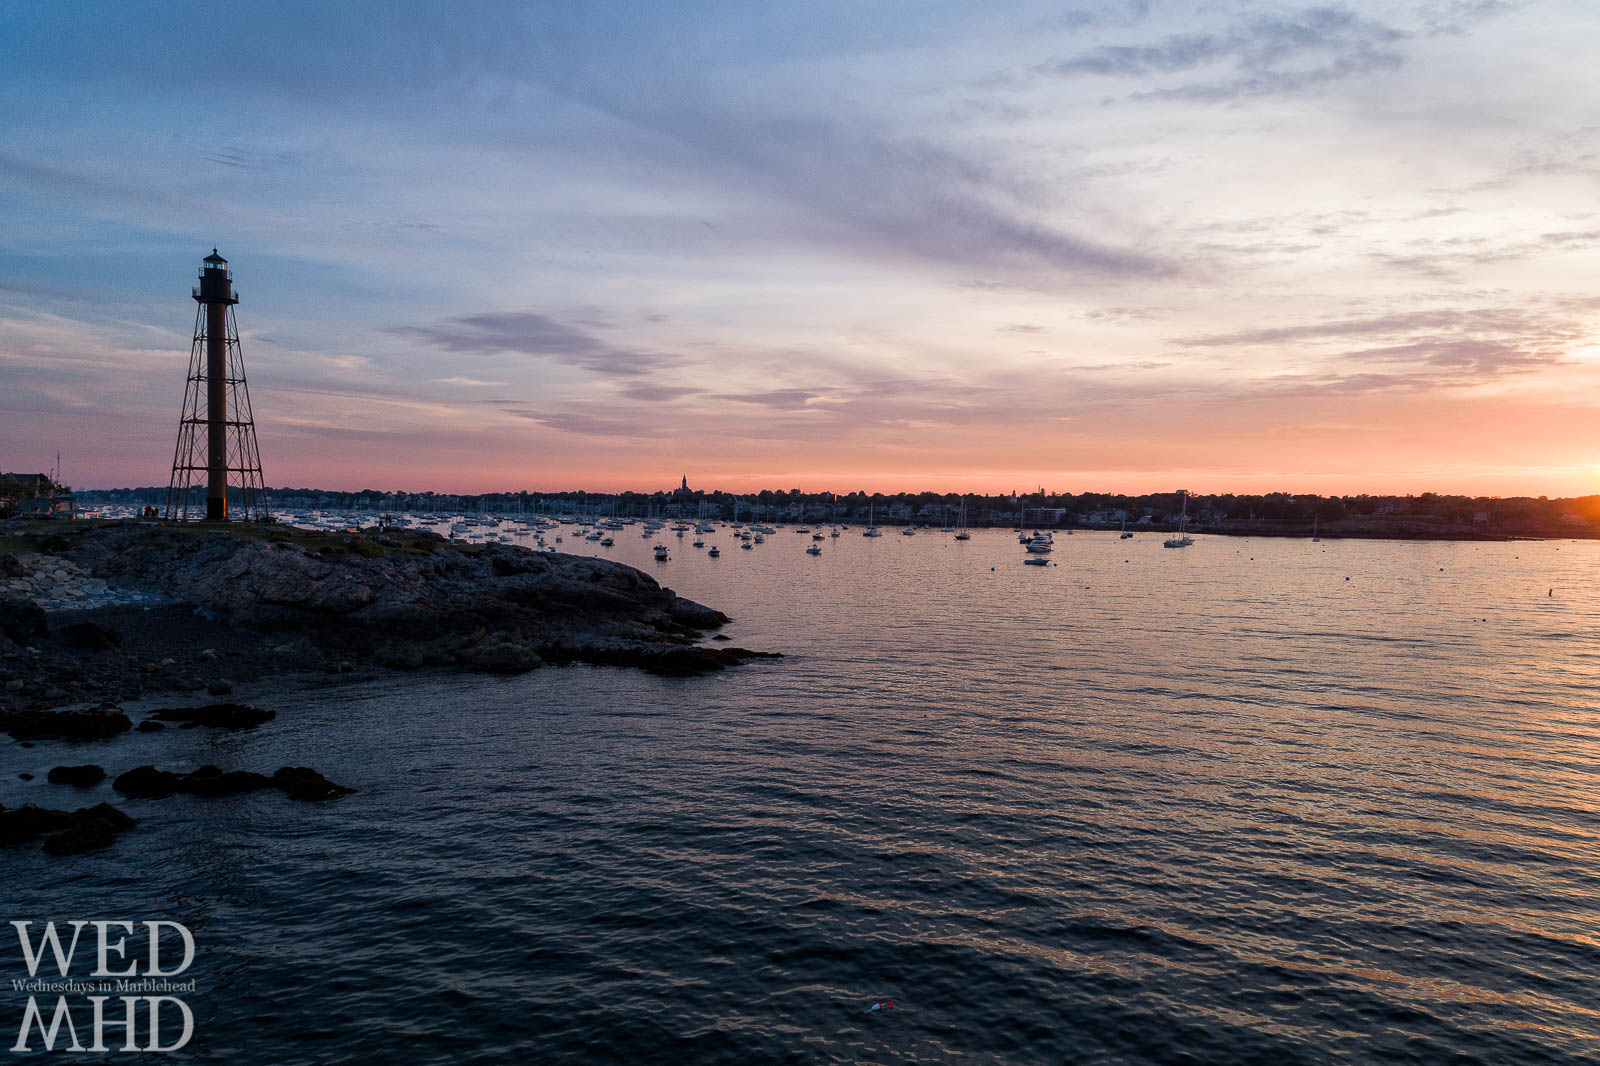 Marblehead Light marks the opening of Marblehead harbor in a low aerial view of sunset on the water